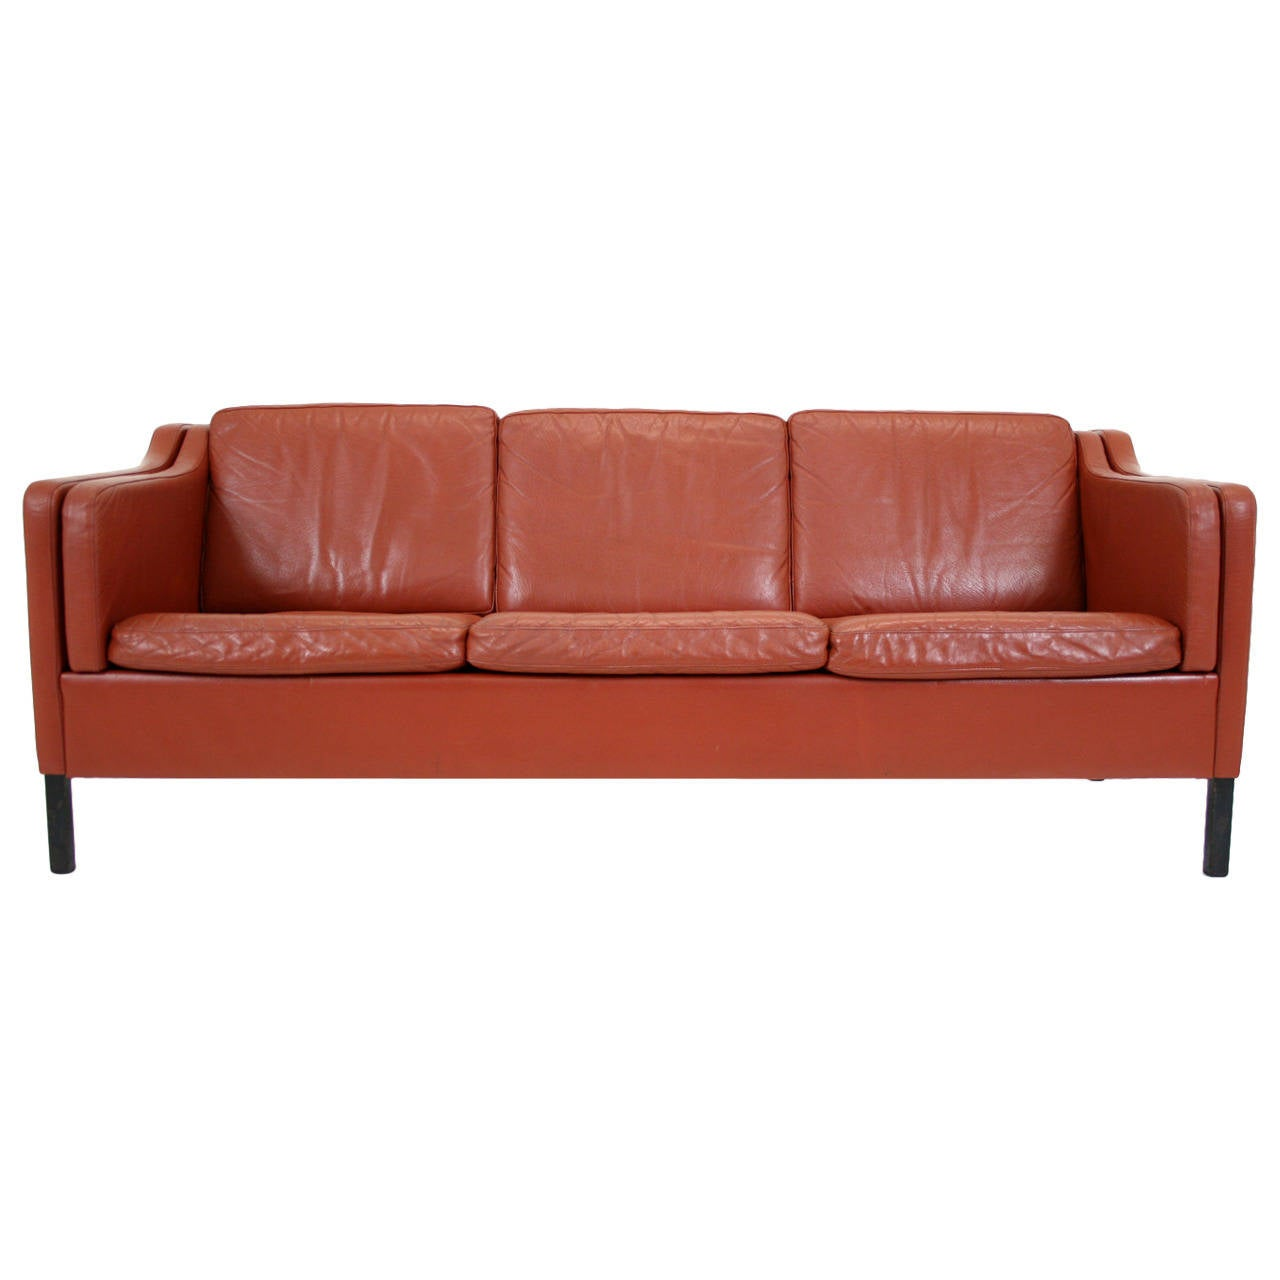 Danish mid century modern leather three seat sofa or for Modern leather furniture